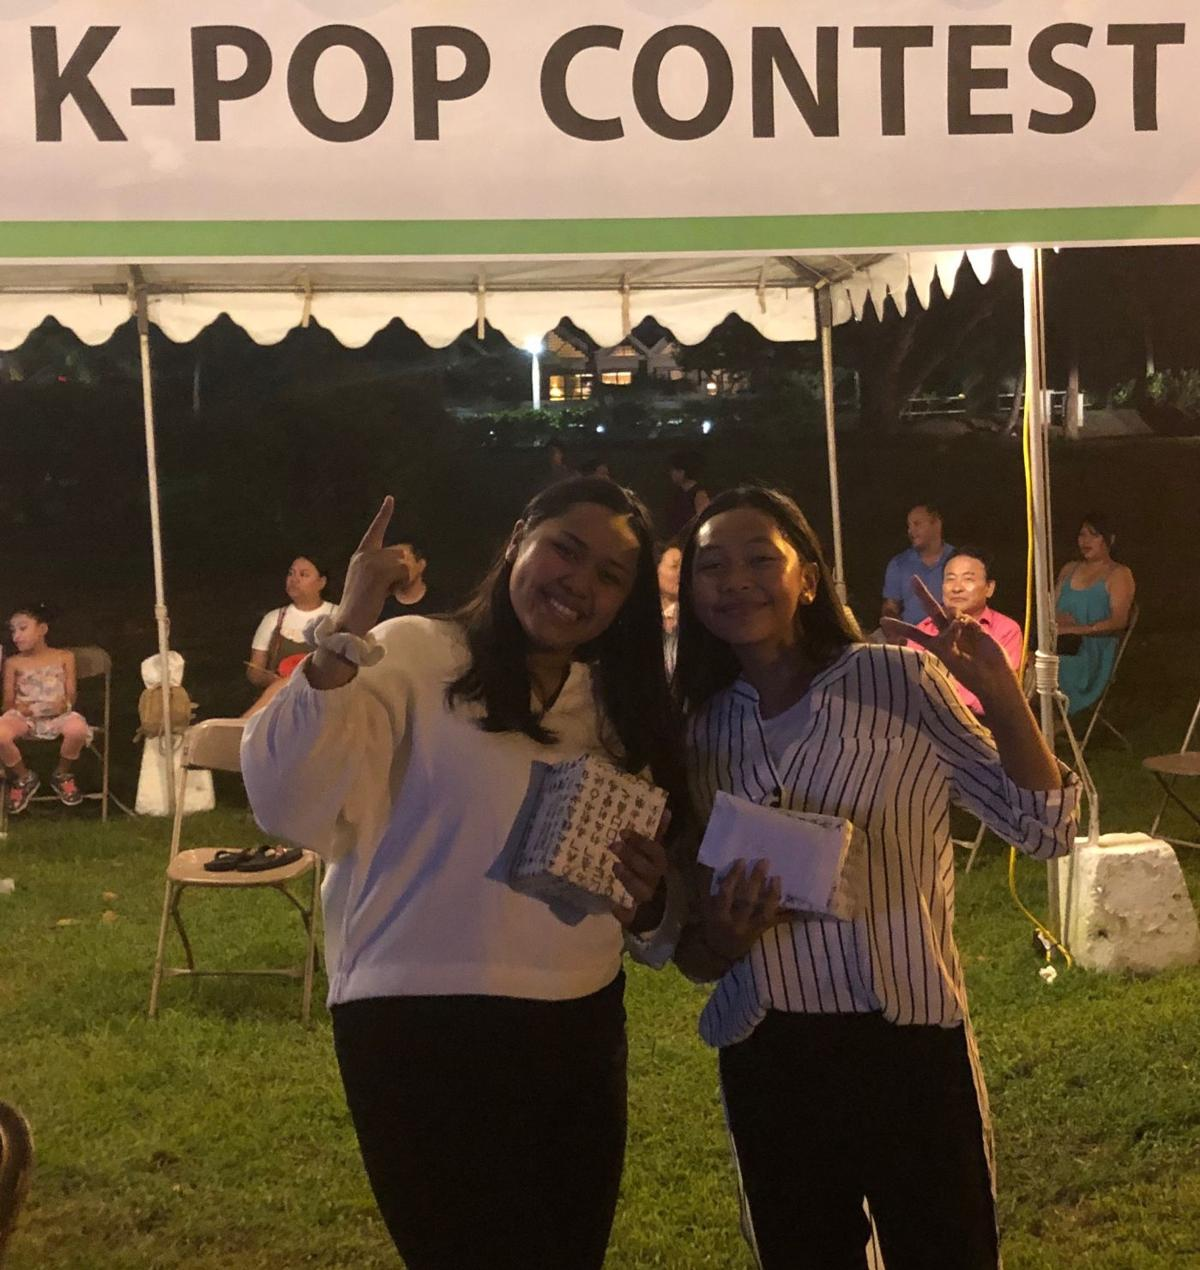 Sisters win K-pop dance contest